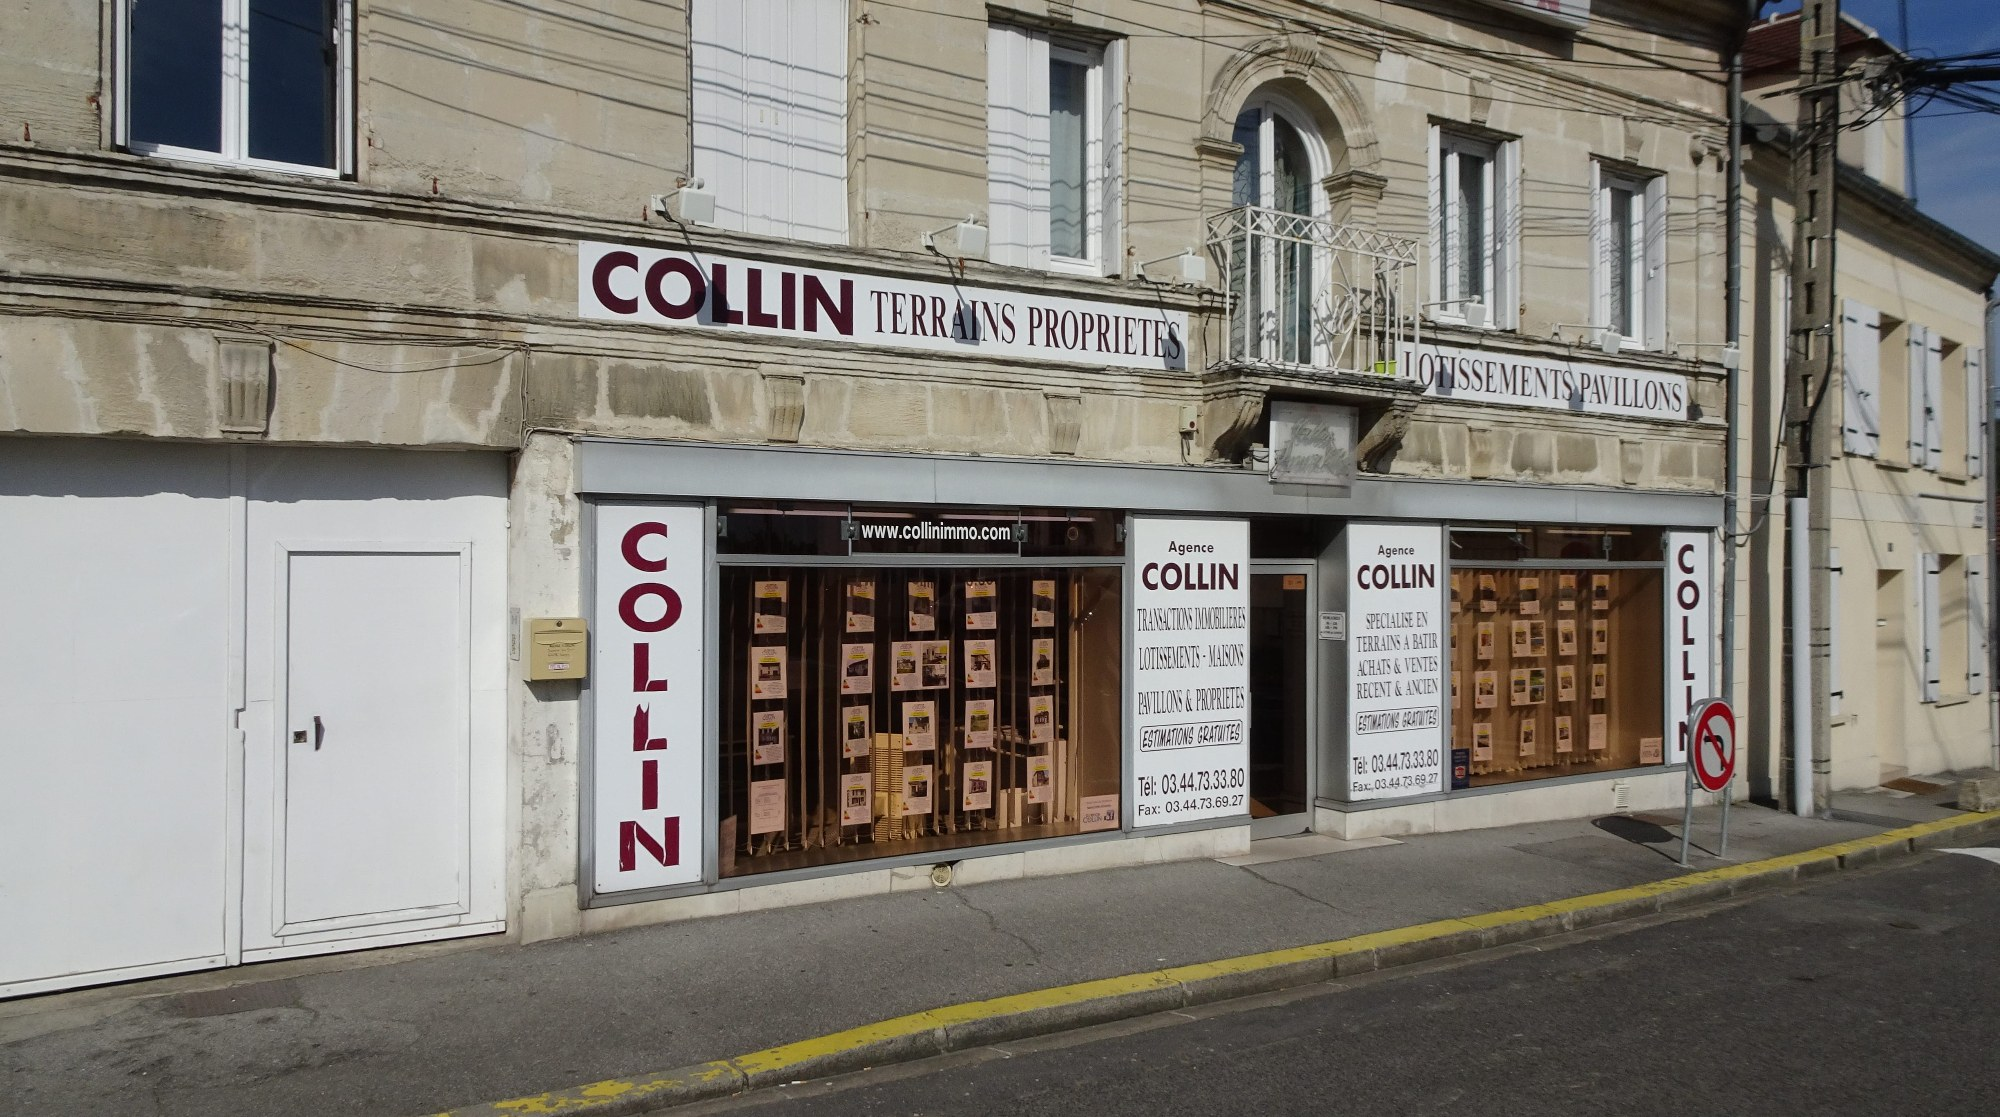 Agence COLLIN